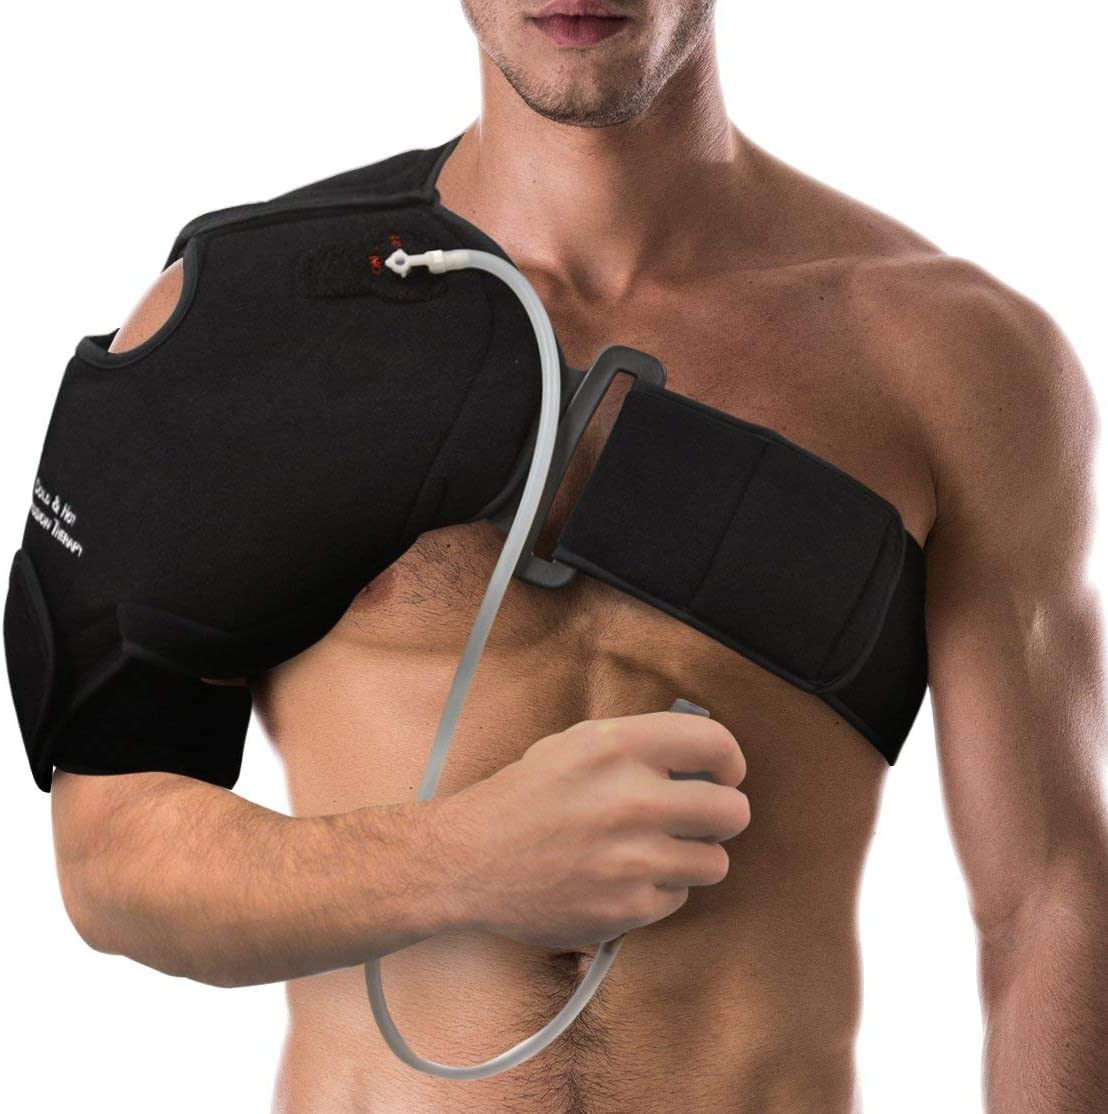 NatraCure Hot/Cold & Compression Shoulder Support 6032 - (Left/Right Reusable Shoulder Brace Wrap with Straps) - Ice Pack, Heating Pad for Sprains, Strains, Injuries and Post Rotator Cuff Surgery